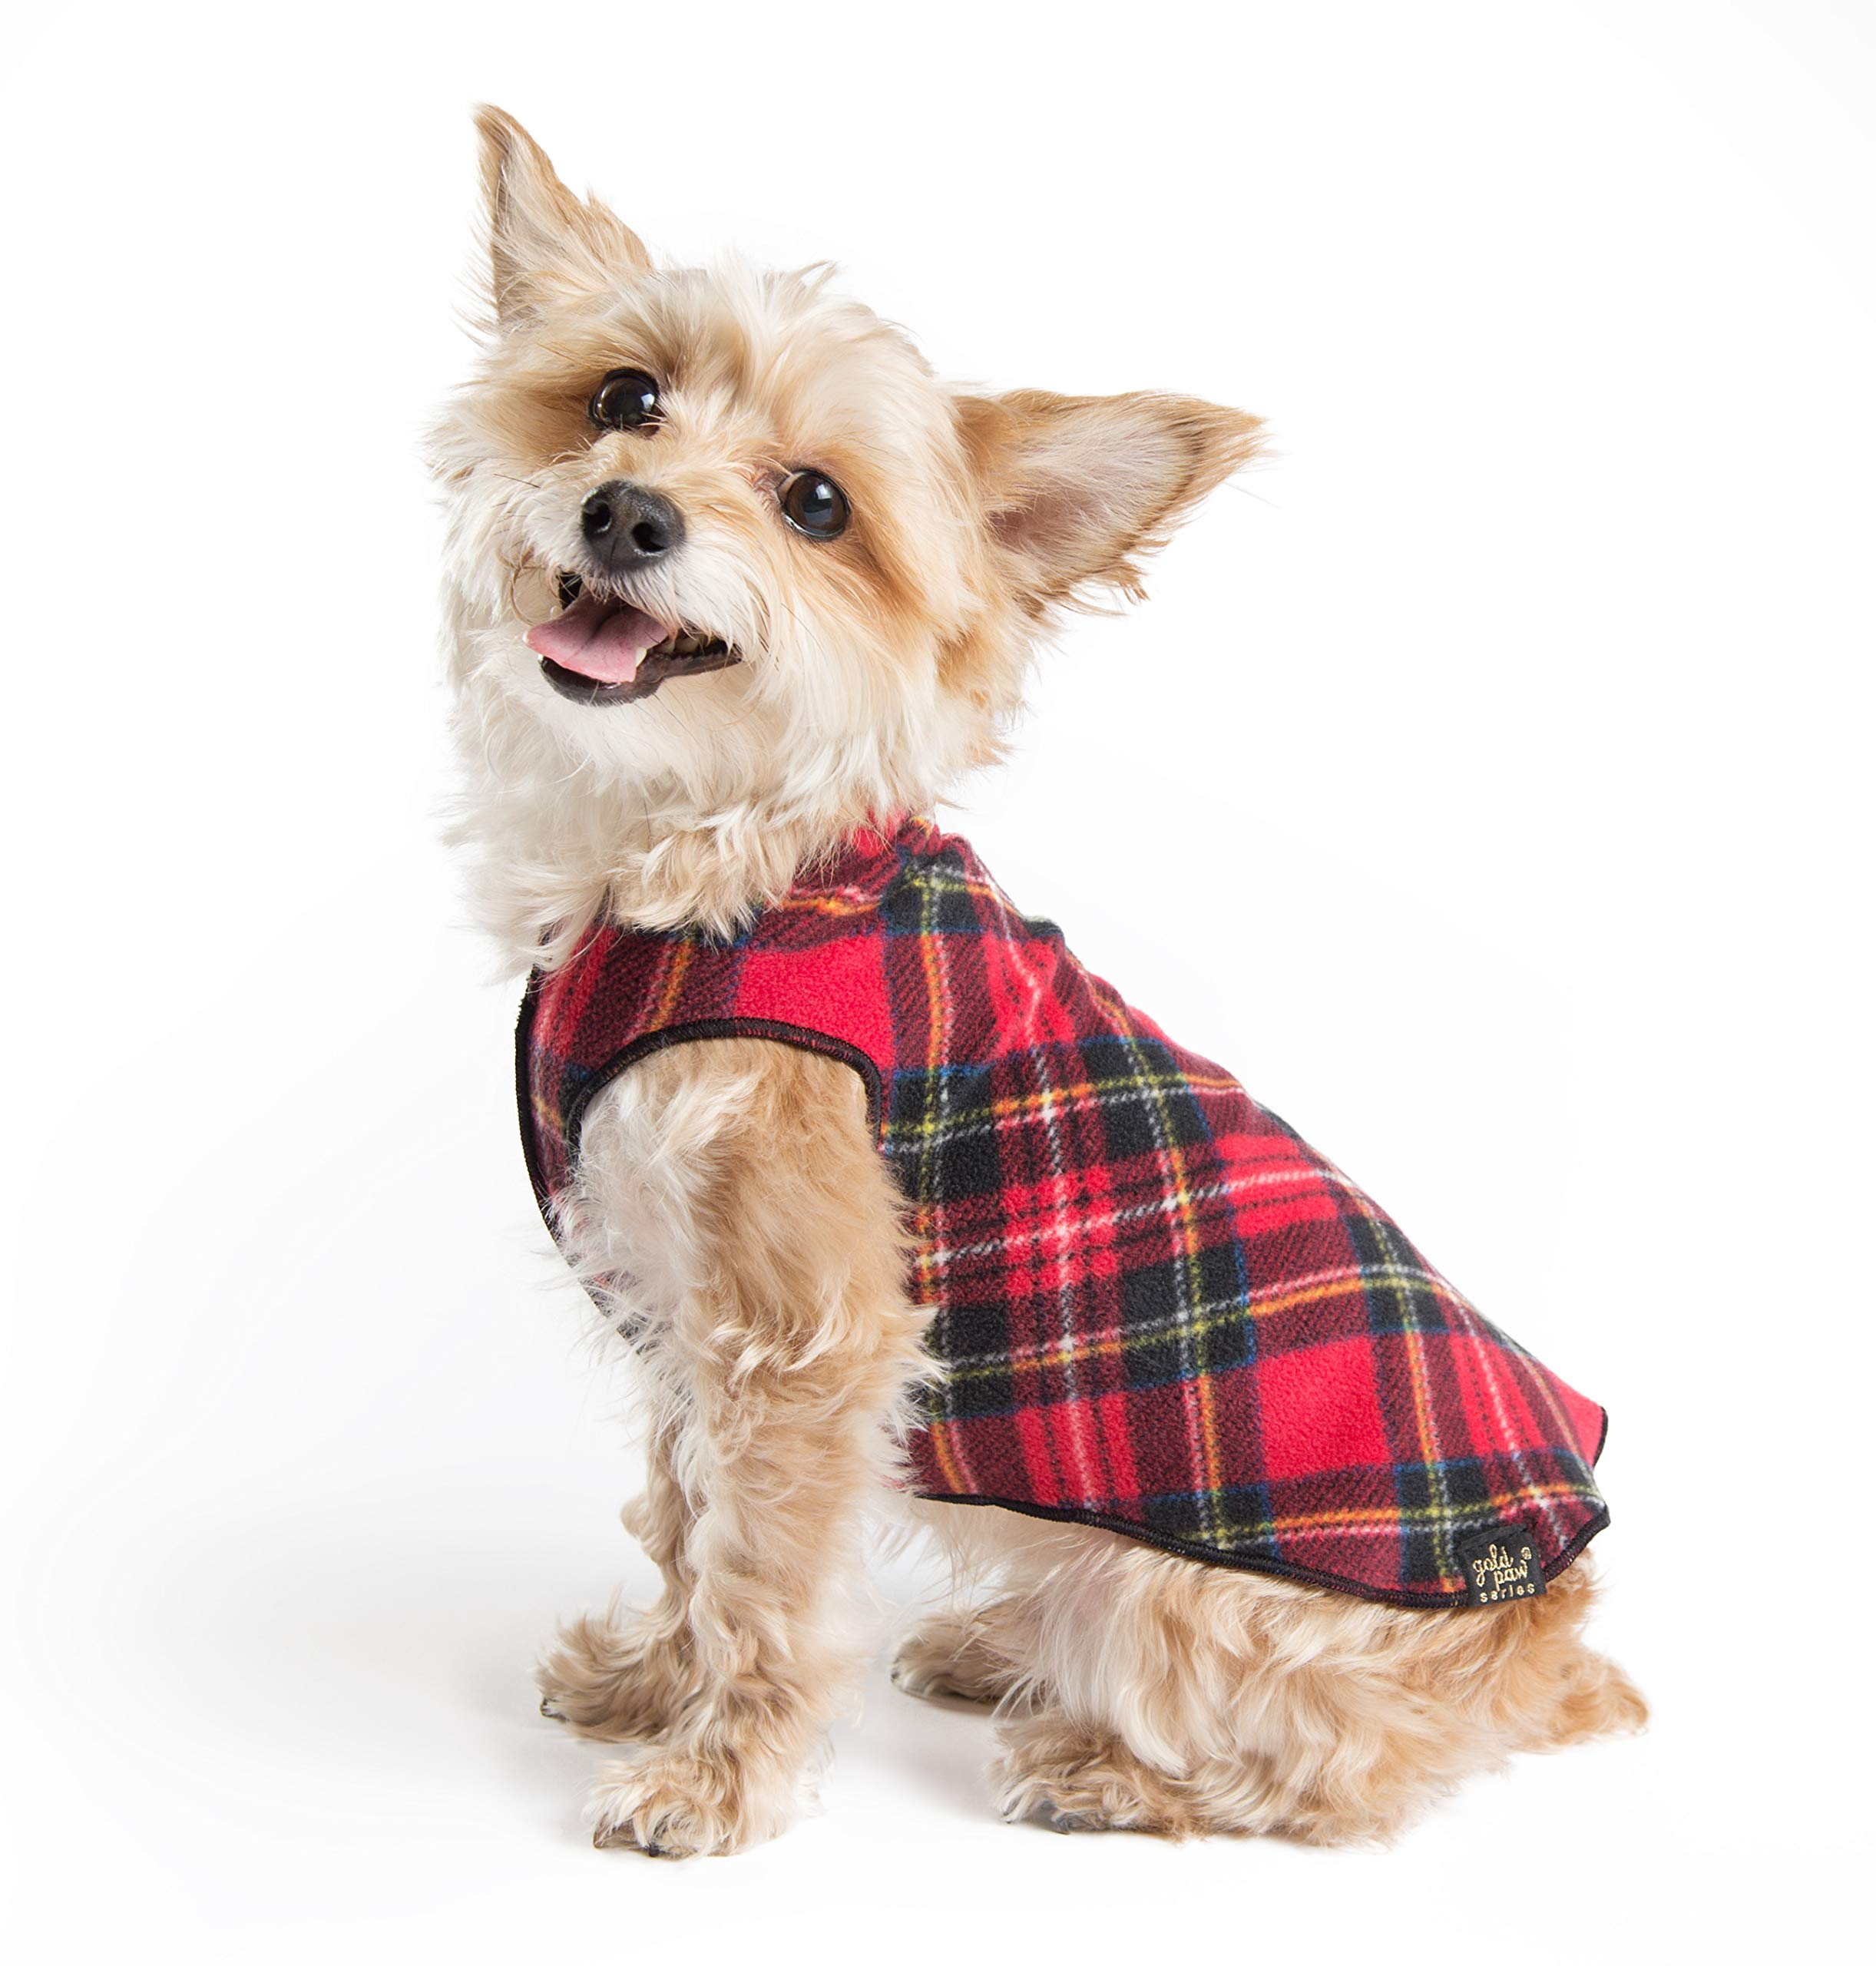 Gold Paw Stretch Fleece Dog Coat - Soft, Warm Dog Clothes, Stretchy Pet Sweater - Machine Washable, Eco Friendly - All Season, Red Classic Plaid, Size 30 by Gold Paw